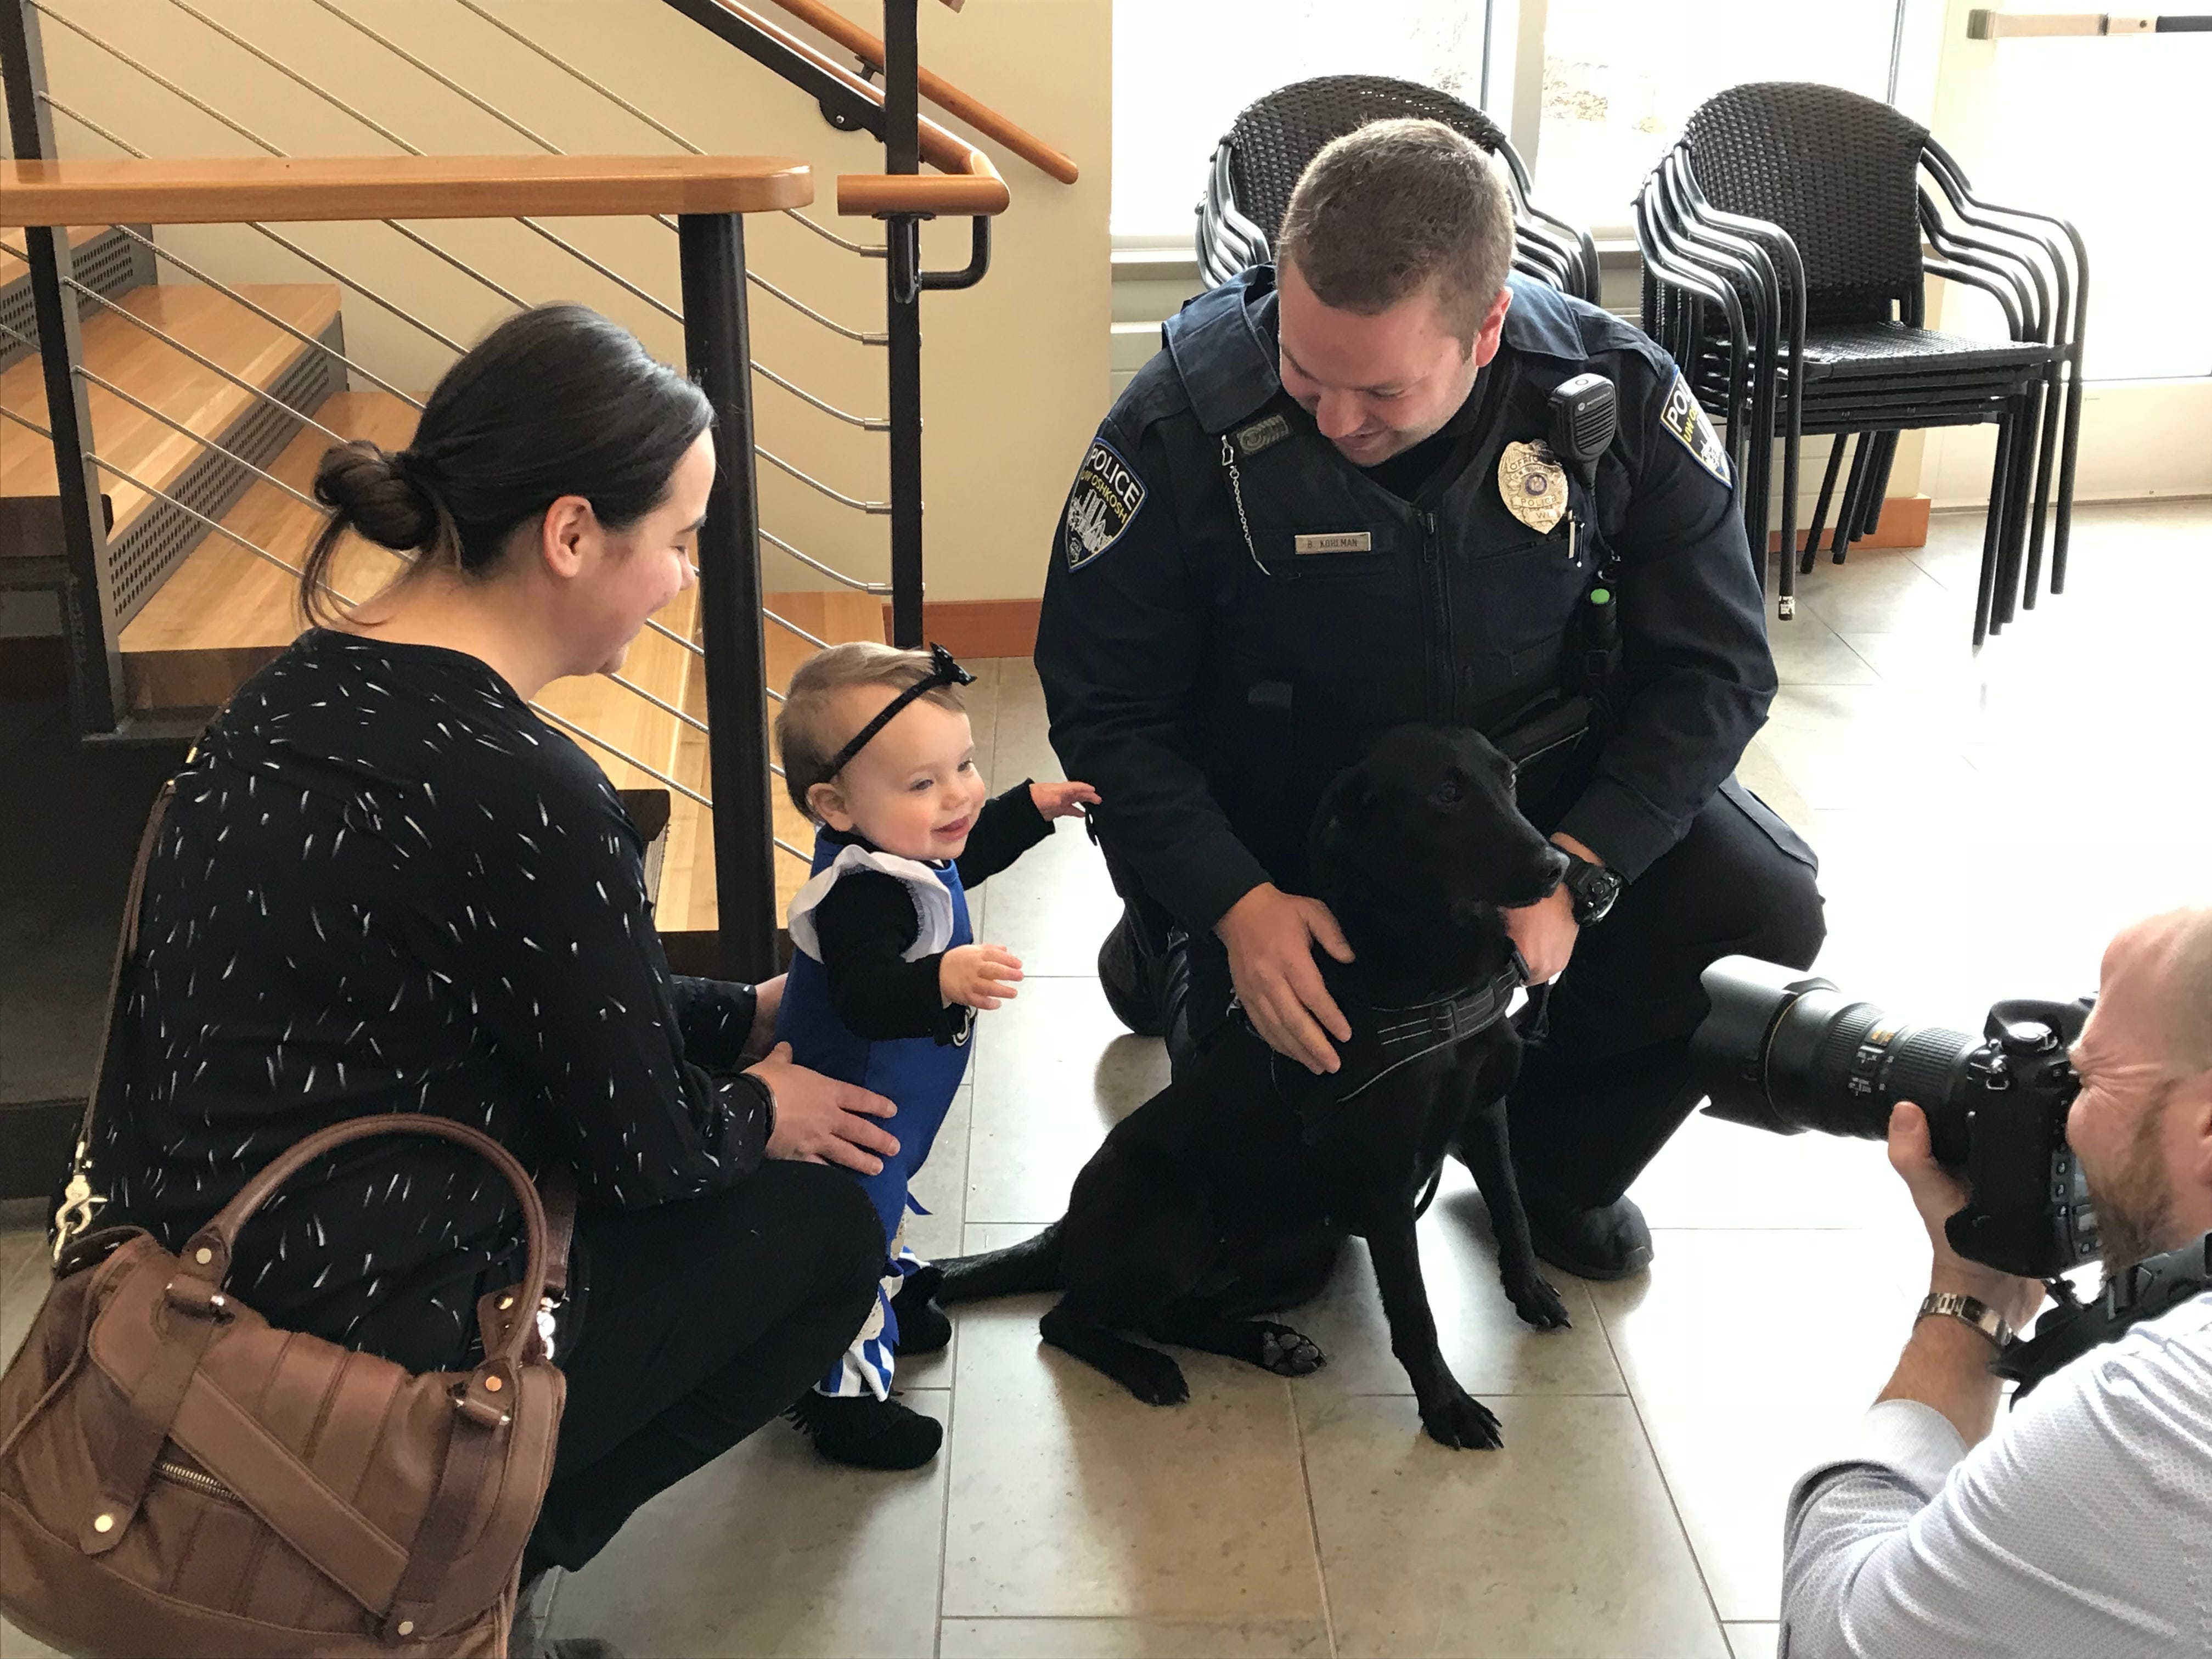 The Kohlman family gets media attention Monday at the University of Wisconsin-Oshkosh as their dog Skylar becomes a K-9 officer.